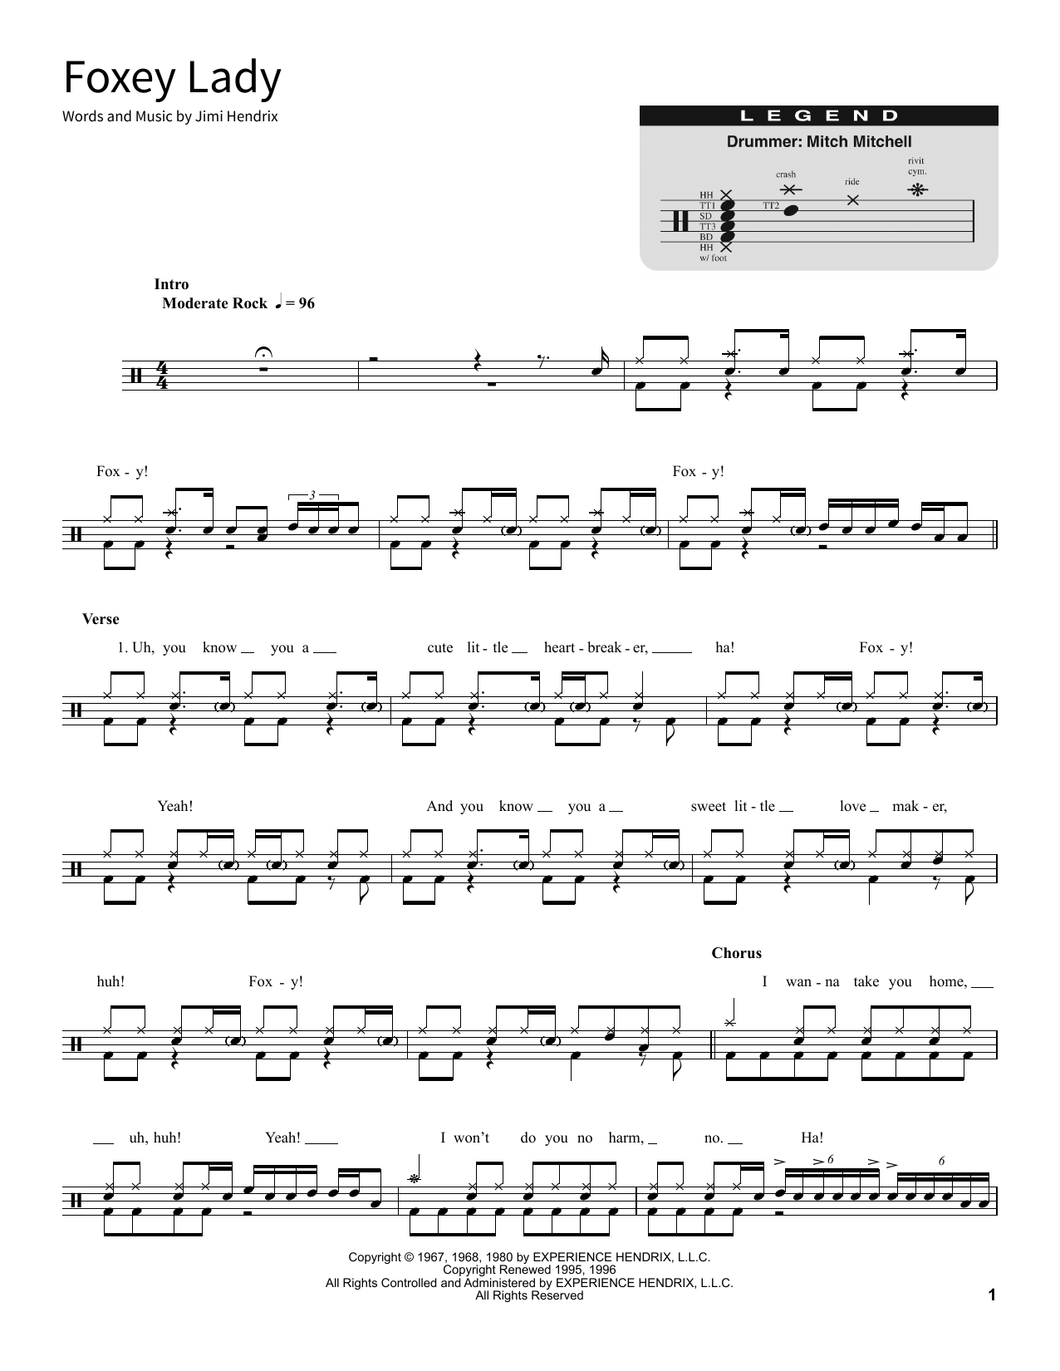 Foxey Lady - Jimi Hendrix - Full Drum Transcription / Drum Sheet Music - SheetMusicDirect SORD